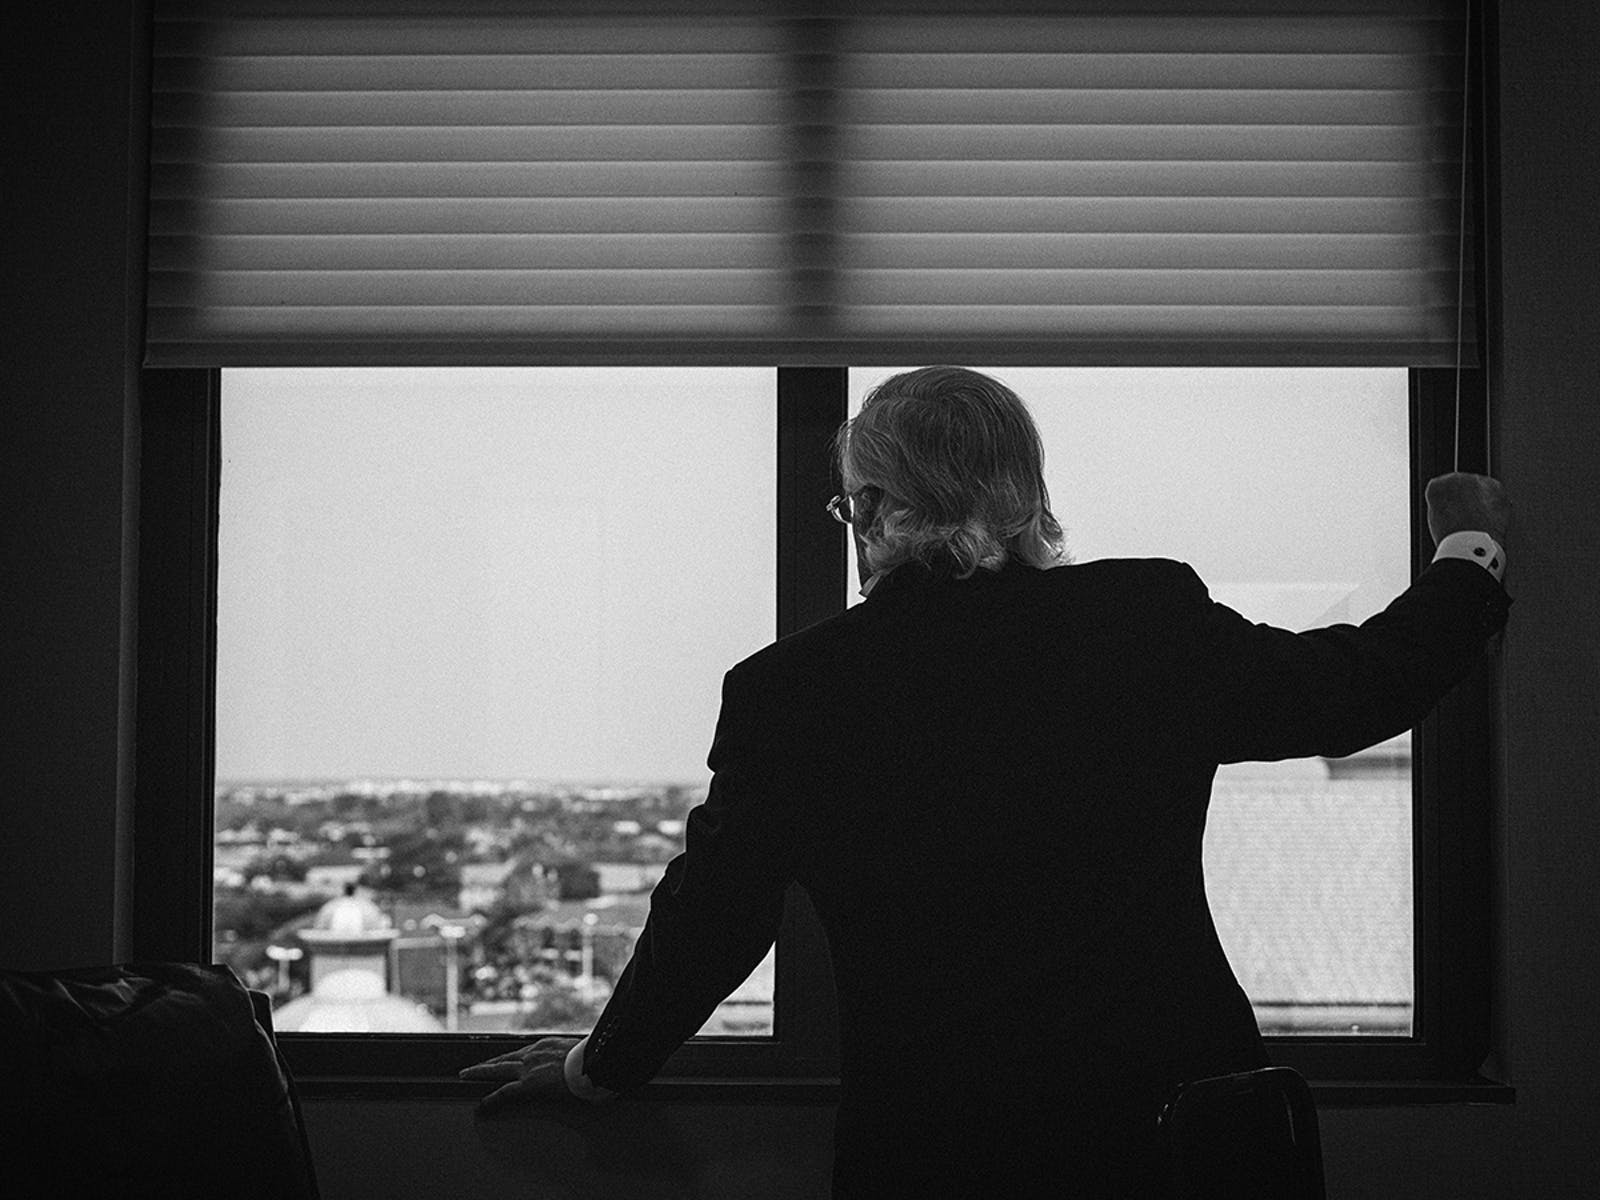 Ricardo Cigarroa looks out the window in his office at the Laredo Medical Center in Laredo, on April 28, 2020.